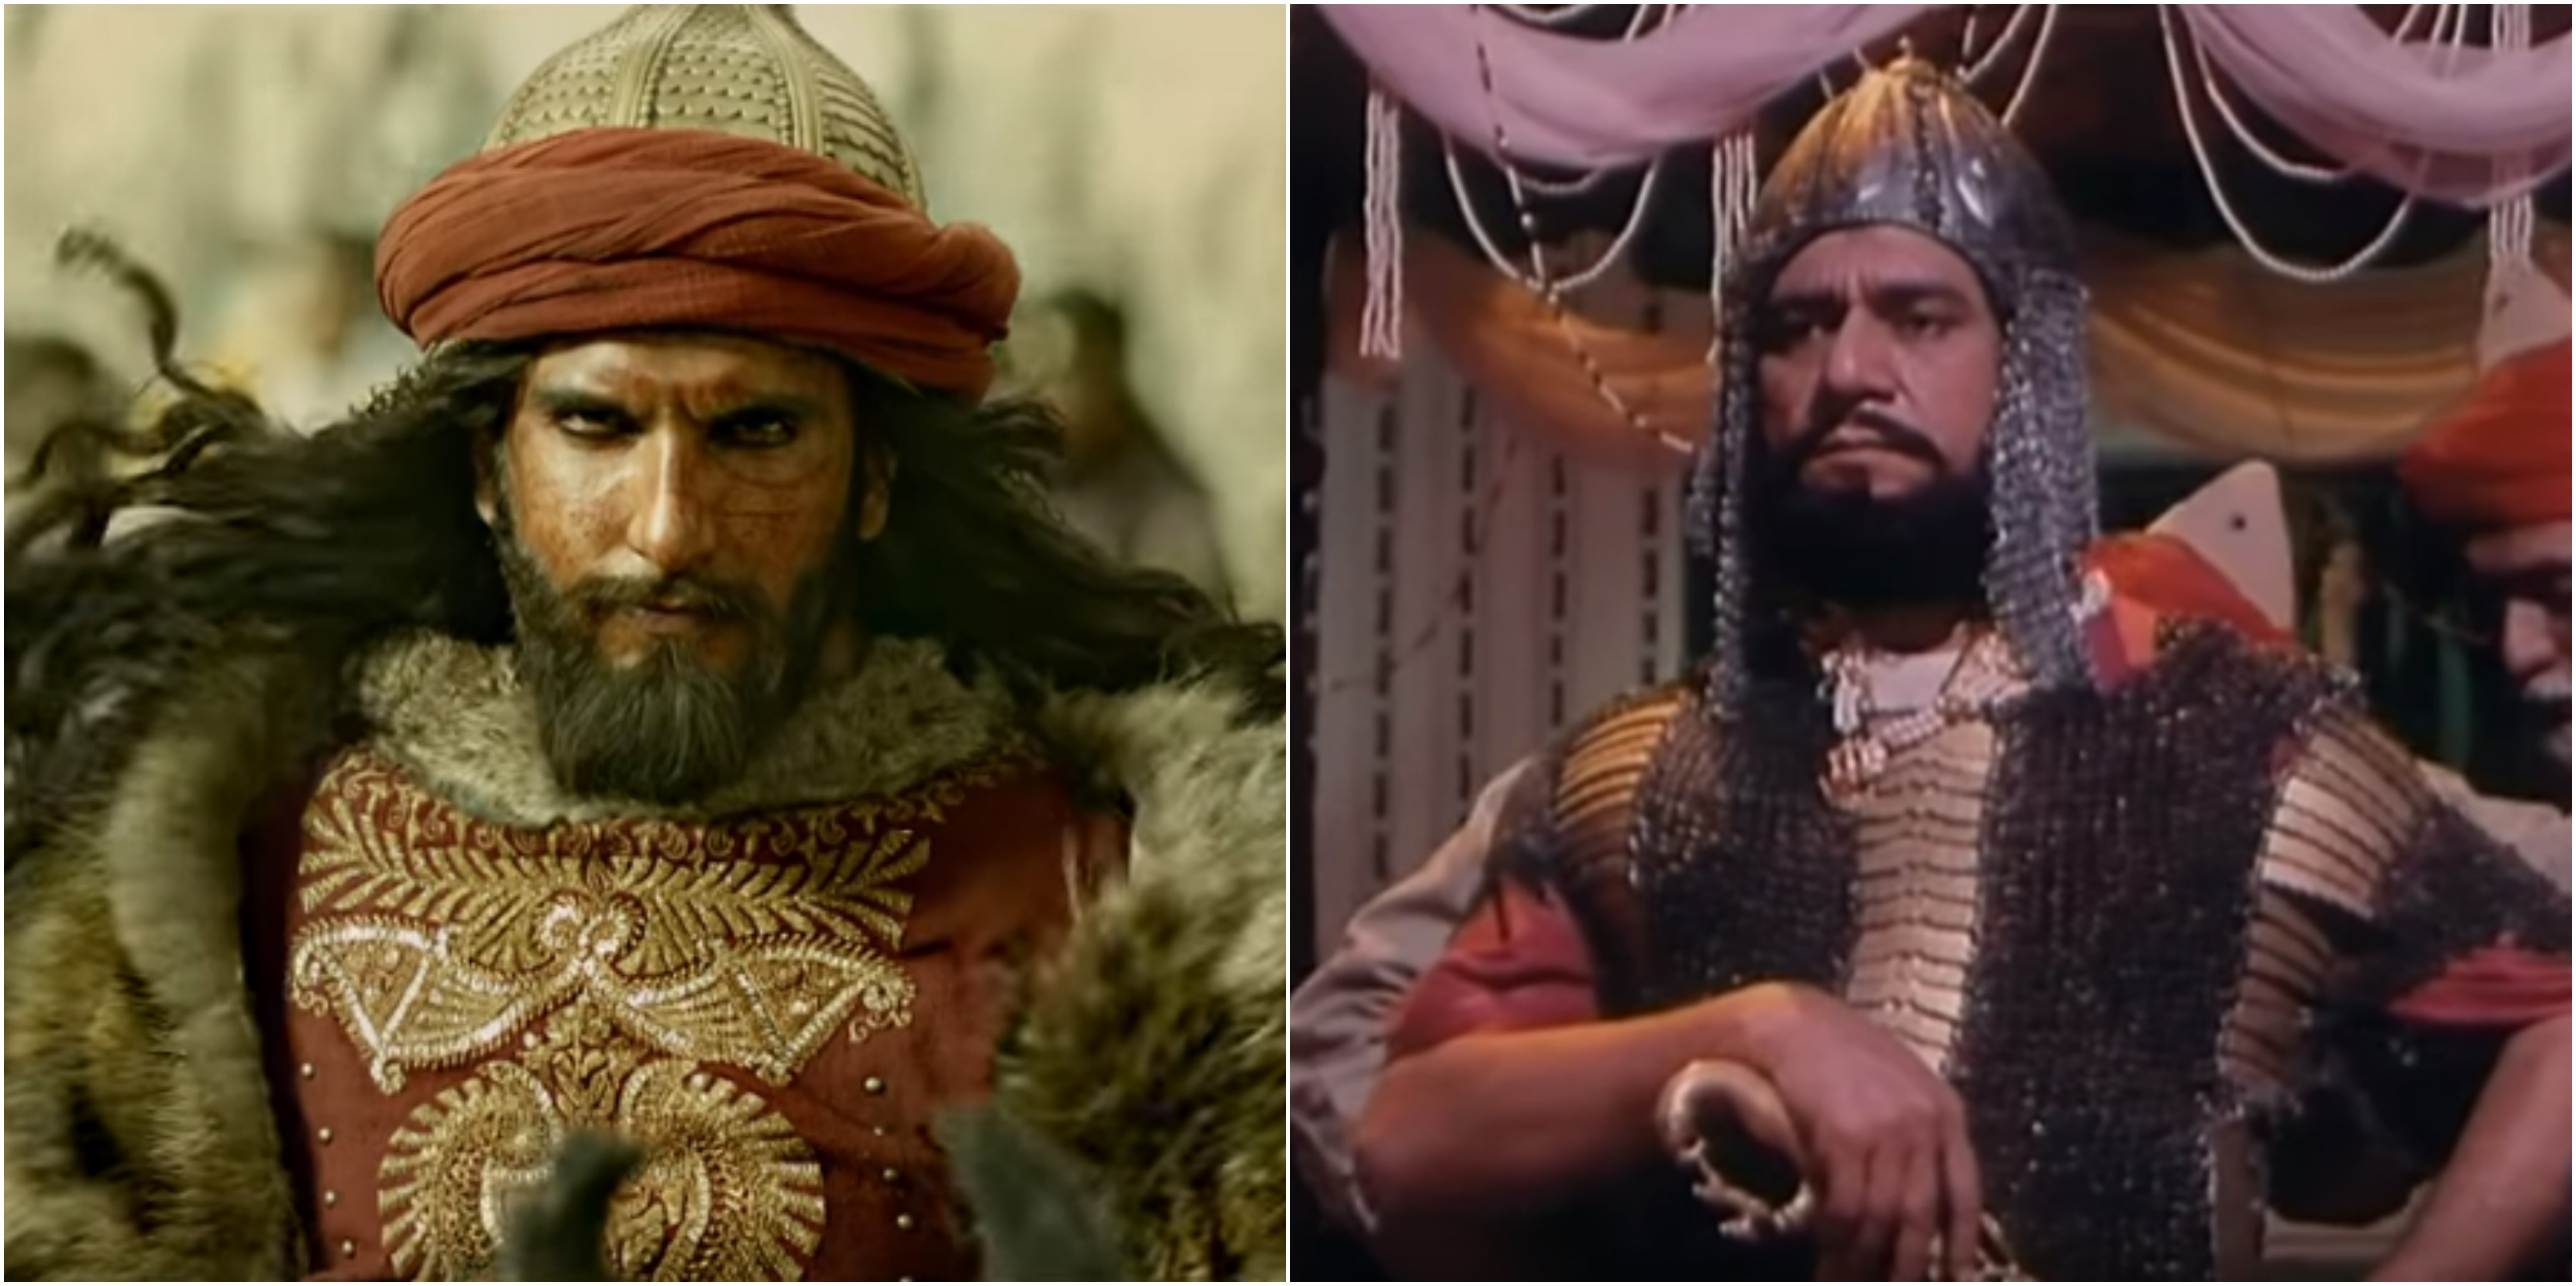 Ranveer Singh in Padmavati and Om Puri in Bharat Ek Khoj.